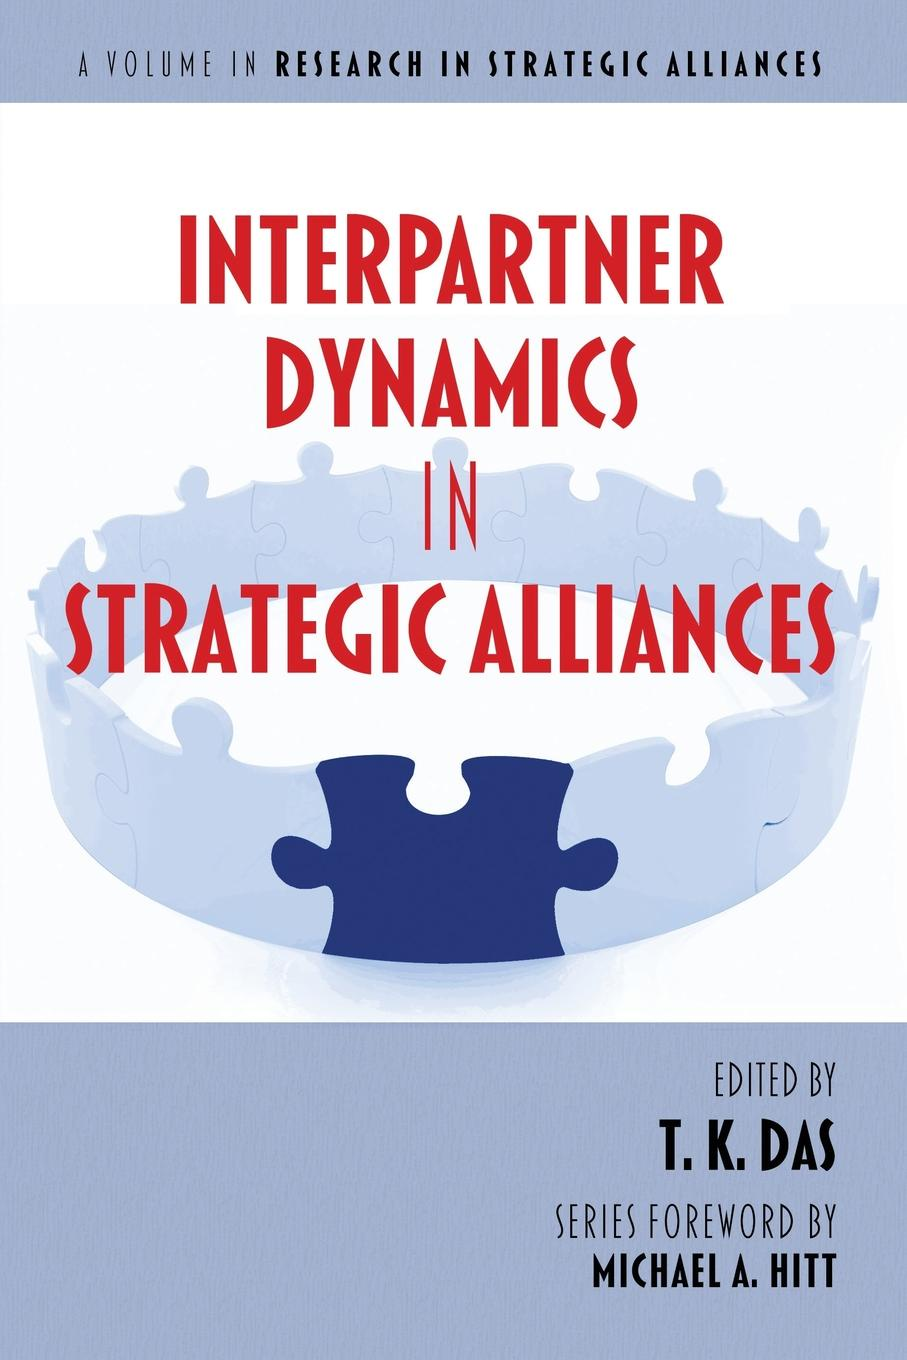 Interpartner Dynamics in Strategic Alliances Interpartner Dynamics in Strategic Alliances is a volume in the book...